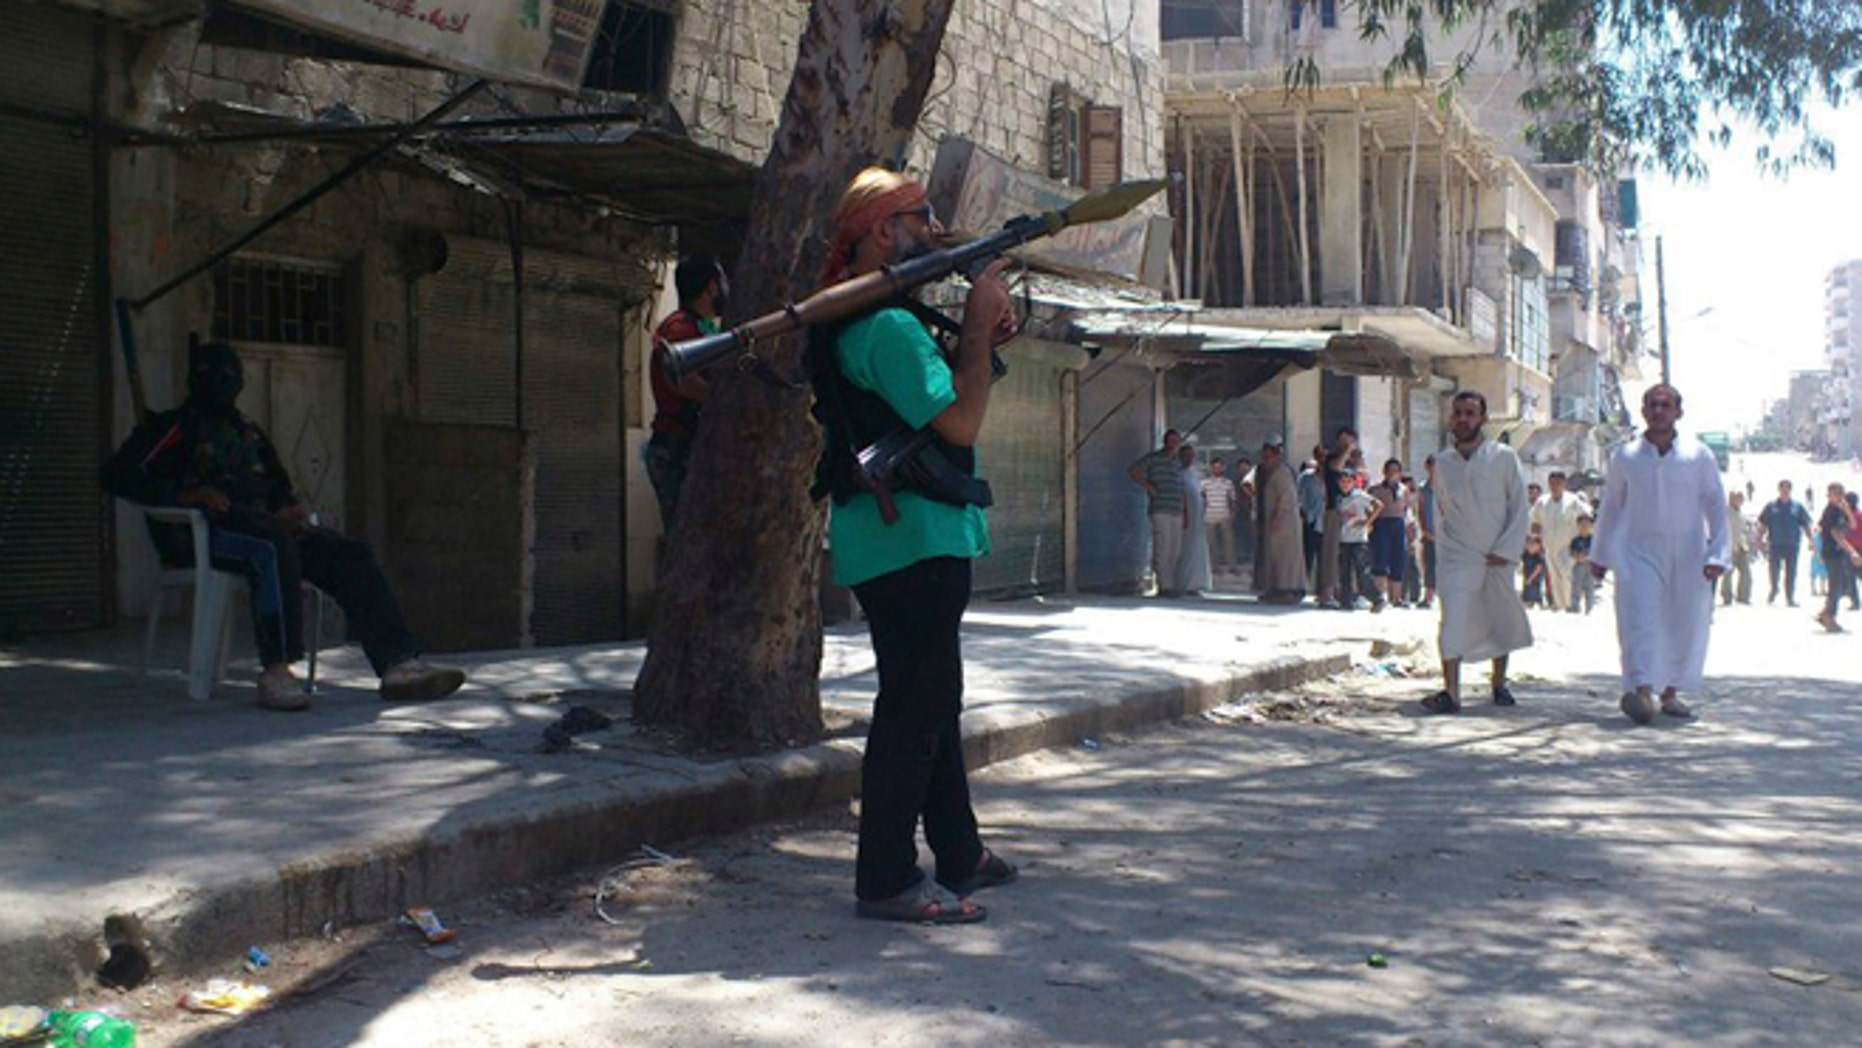 July 20: Members of the Free Syrian Army patrol in Sukari, Aleppo province.